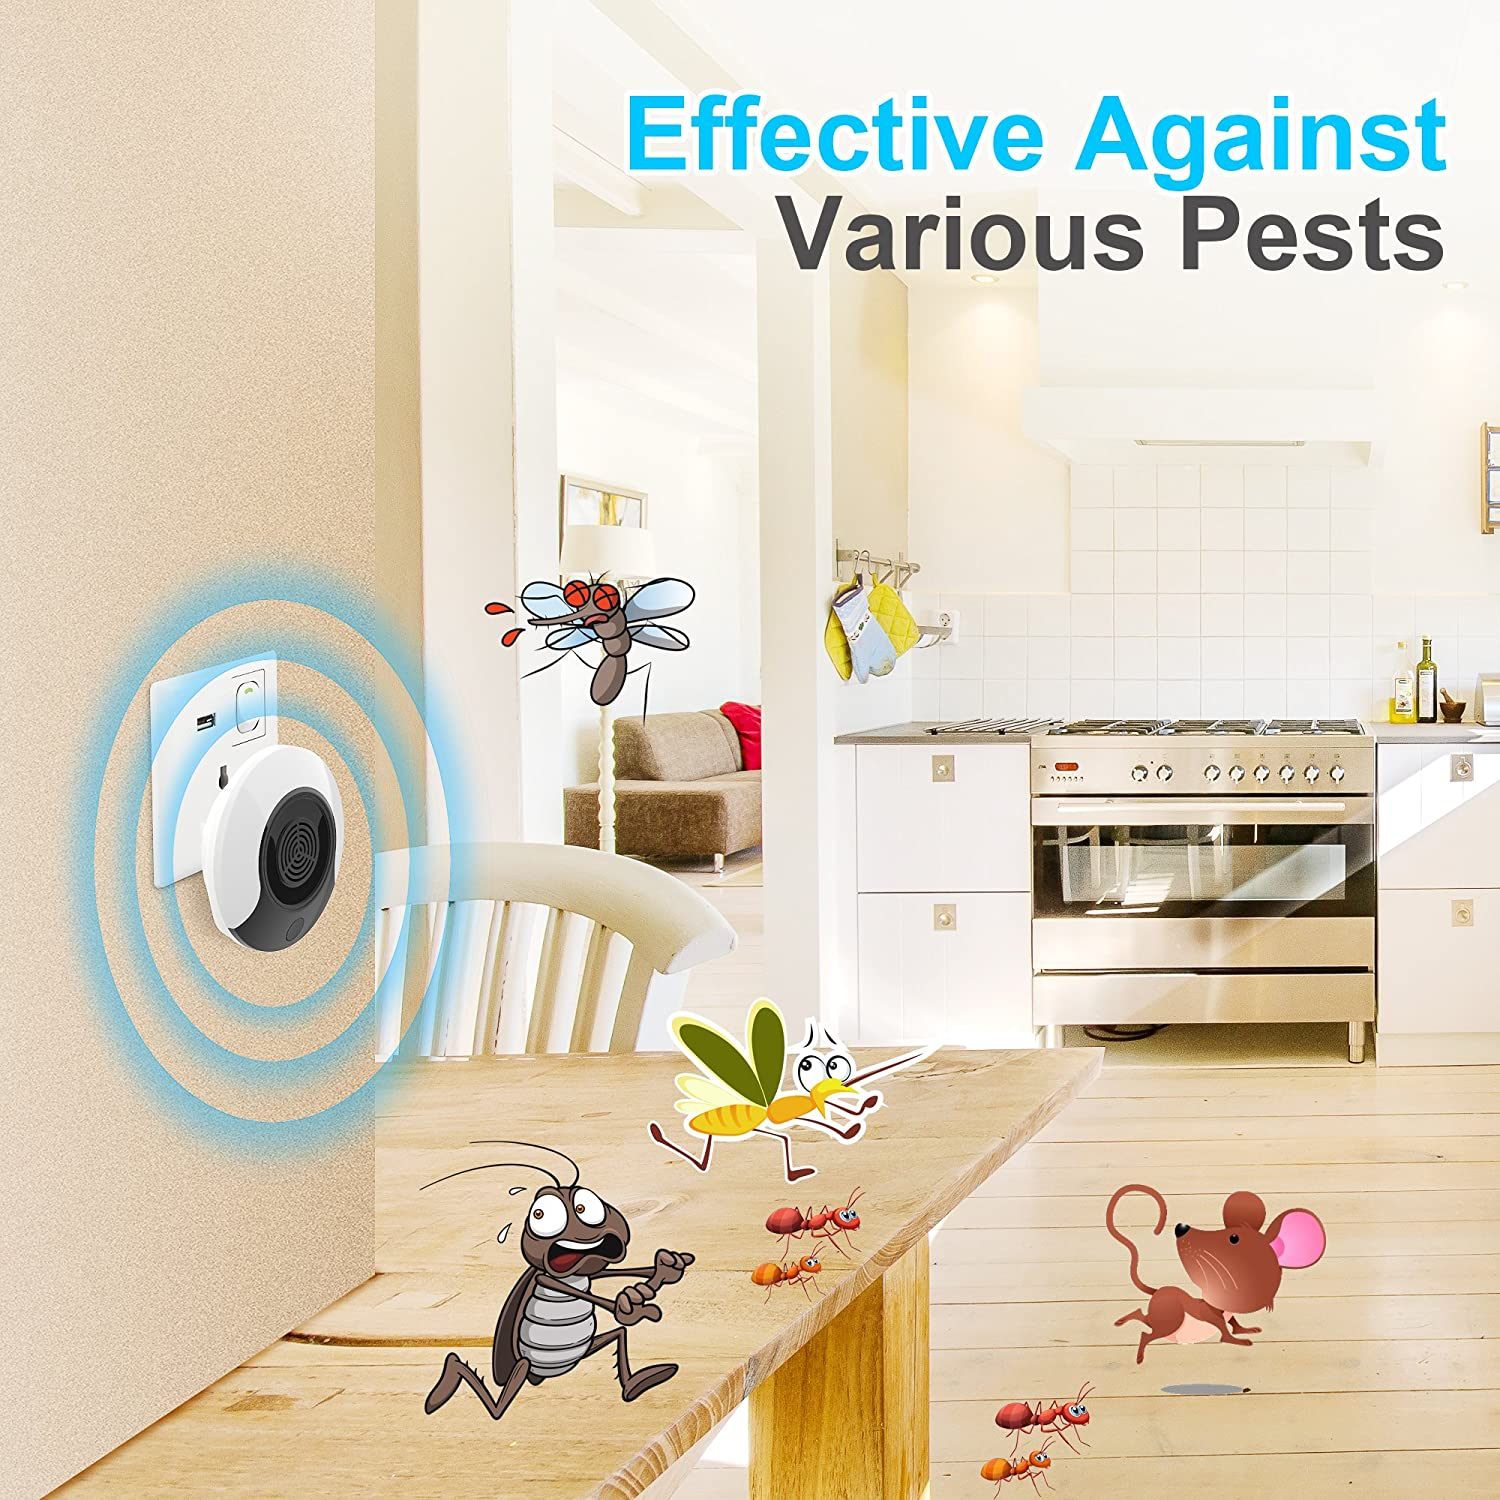 Yiven Pest Repellent Ultrasonic Control Mouse Plug Is The Circuit Diagram Of An Mosquito Repellerthe In Repeller Indoor Outdoor Electronic Rodent Insect